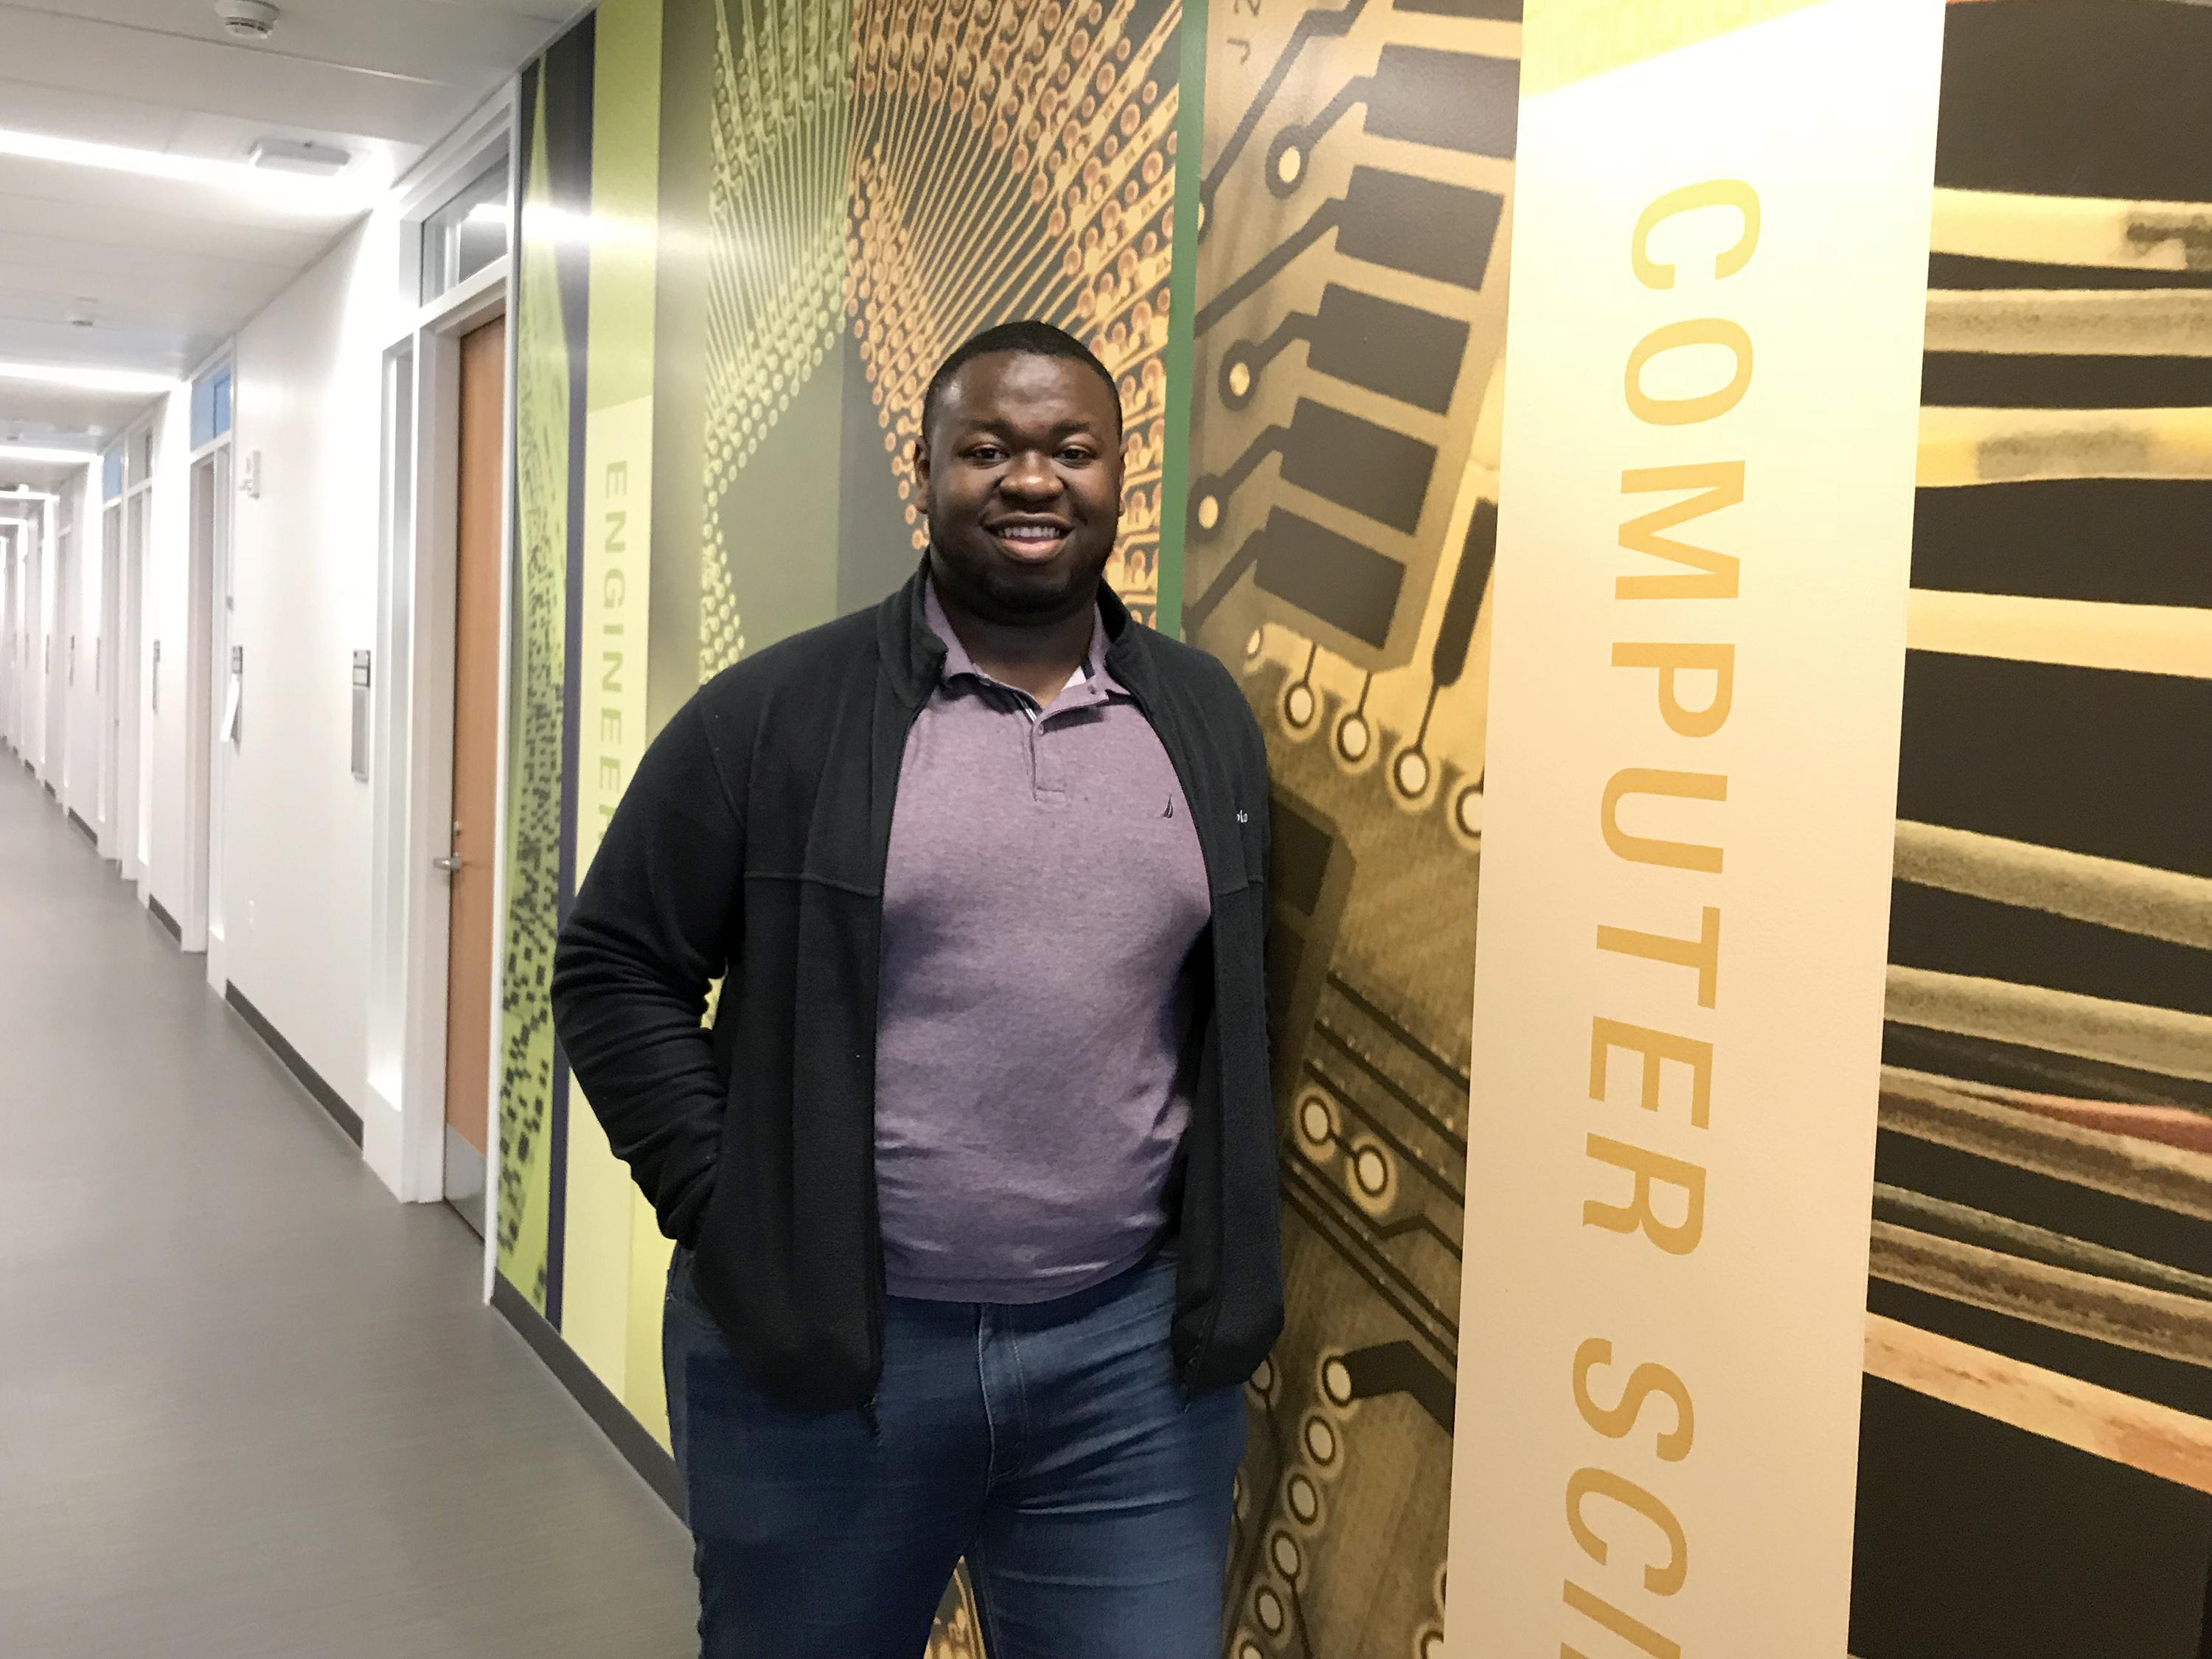 Kingsley Ibezim in front of a mural on computer science and other fields in the Shineman Center